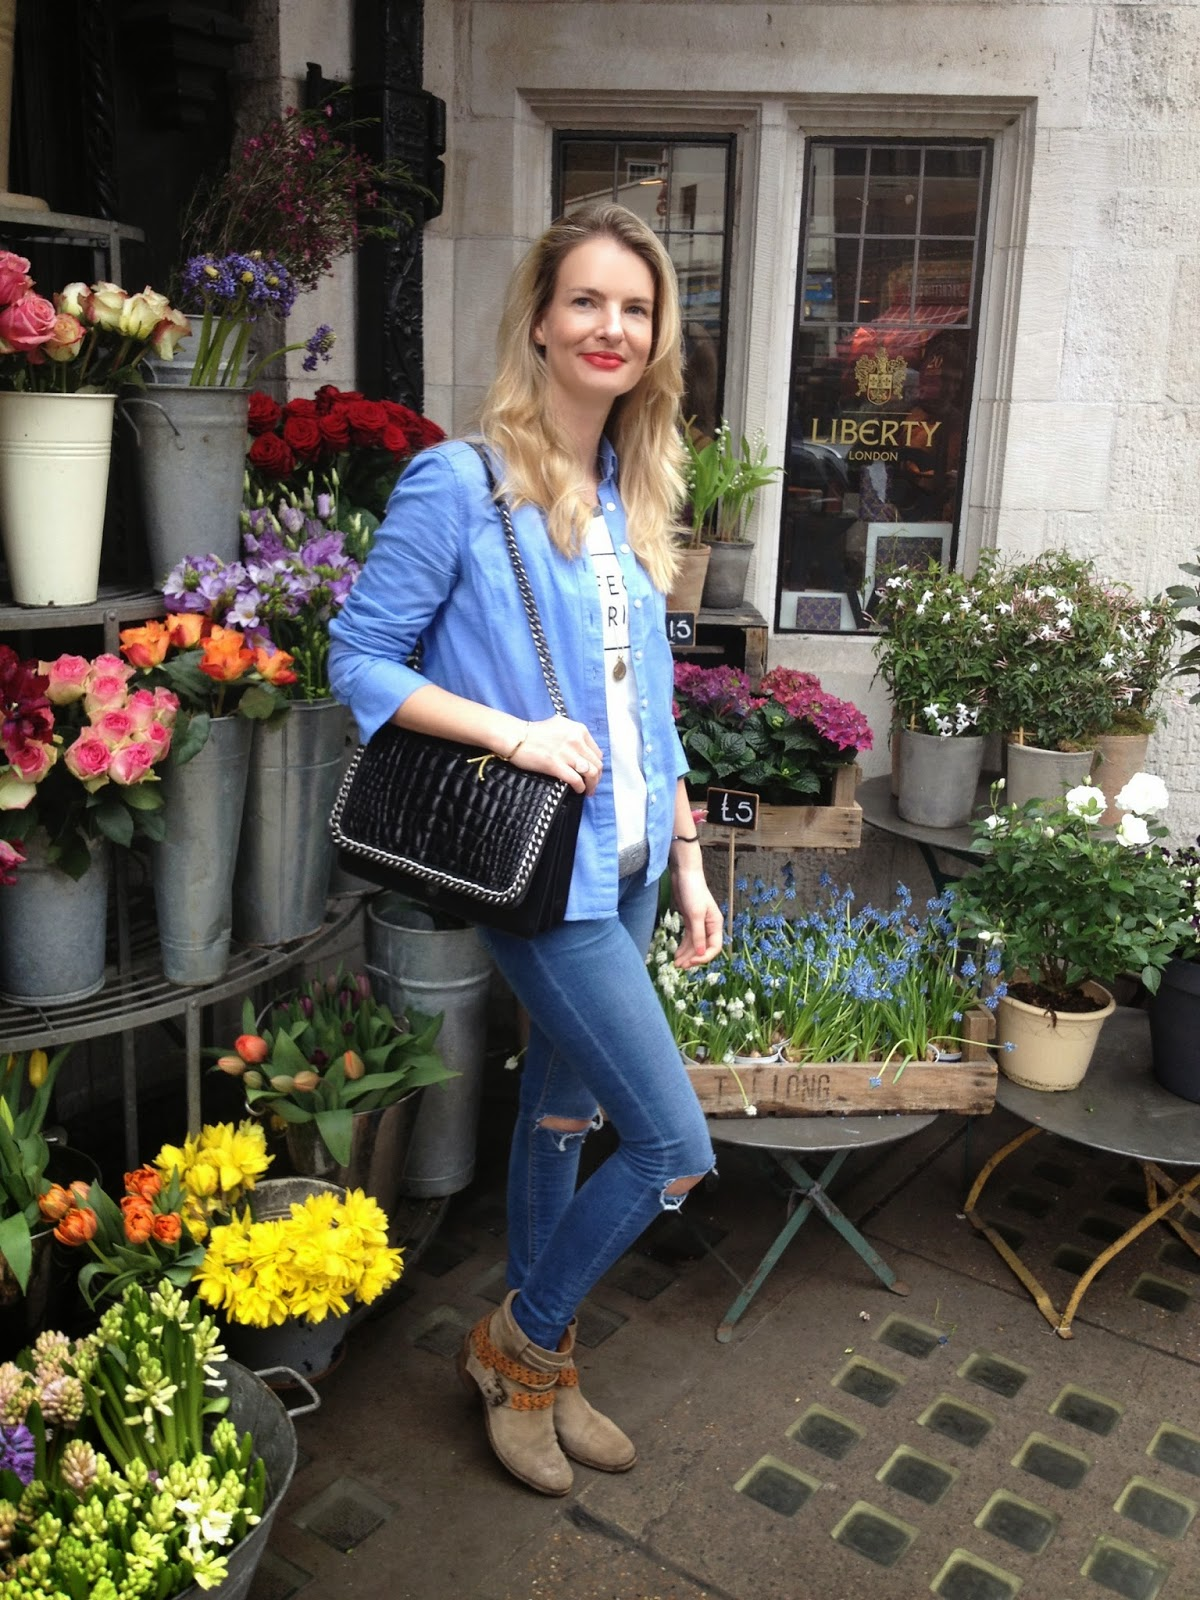 London, soho, Liberty, liberty london, liberty london flowers, street style, fashion blogger, zara bag, zara croco bag, denim on denim, denim shirt, asos jeans, asos denim, ripped jeans, russell and bromley, booties, boho chic, chrissabella